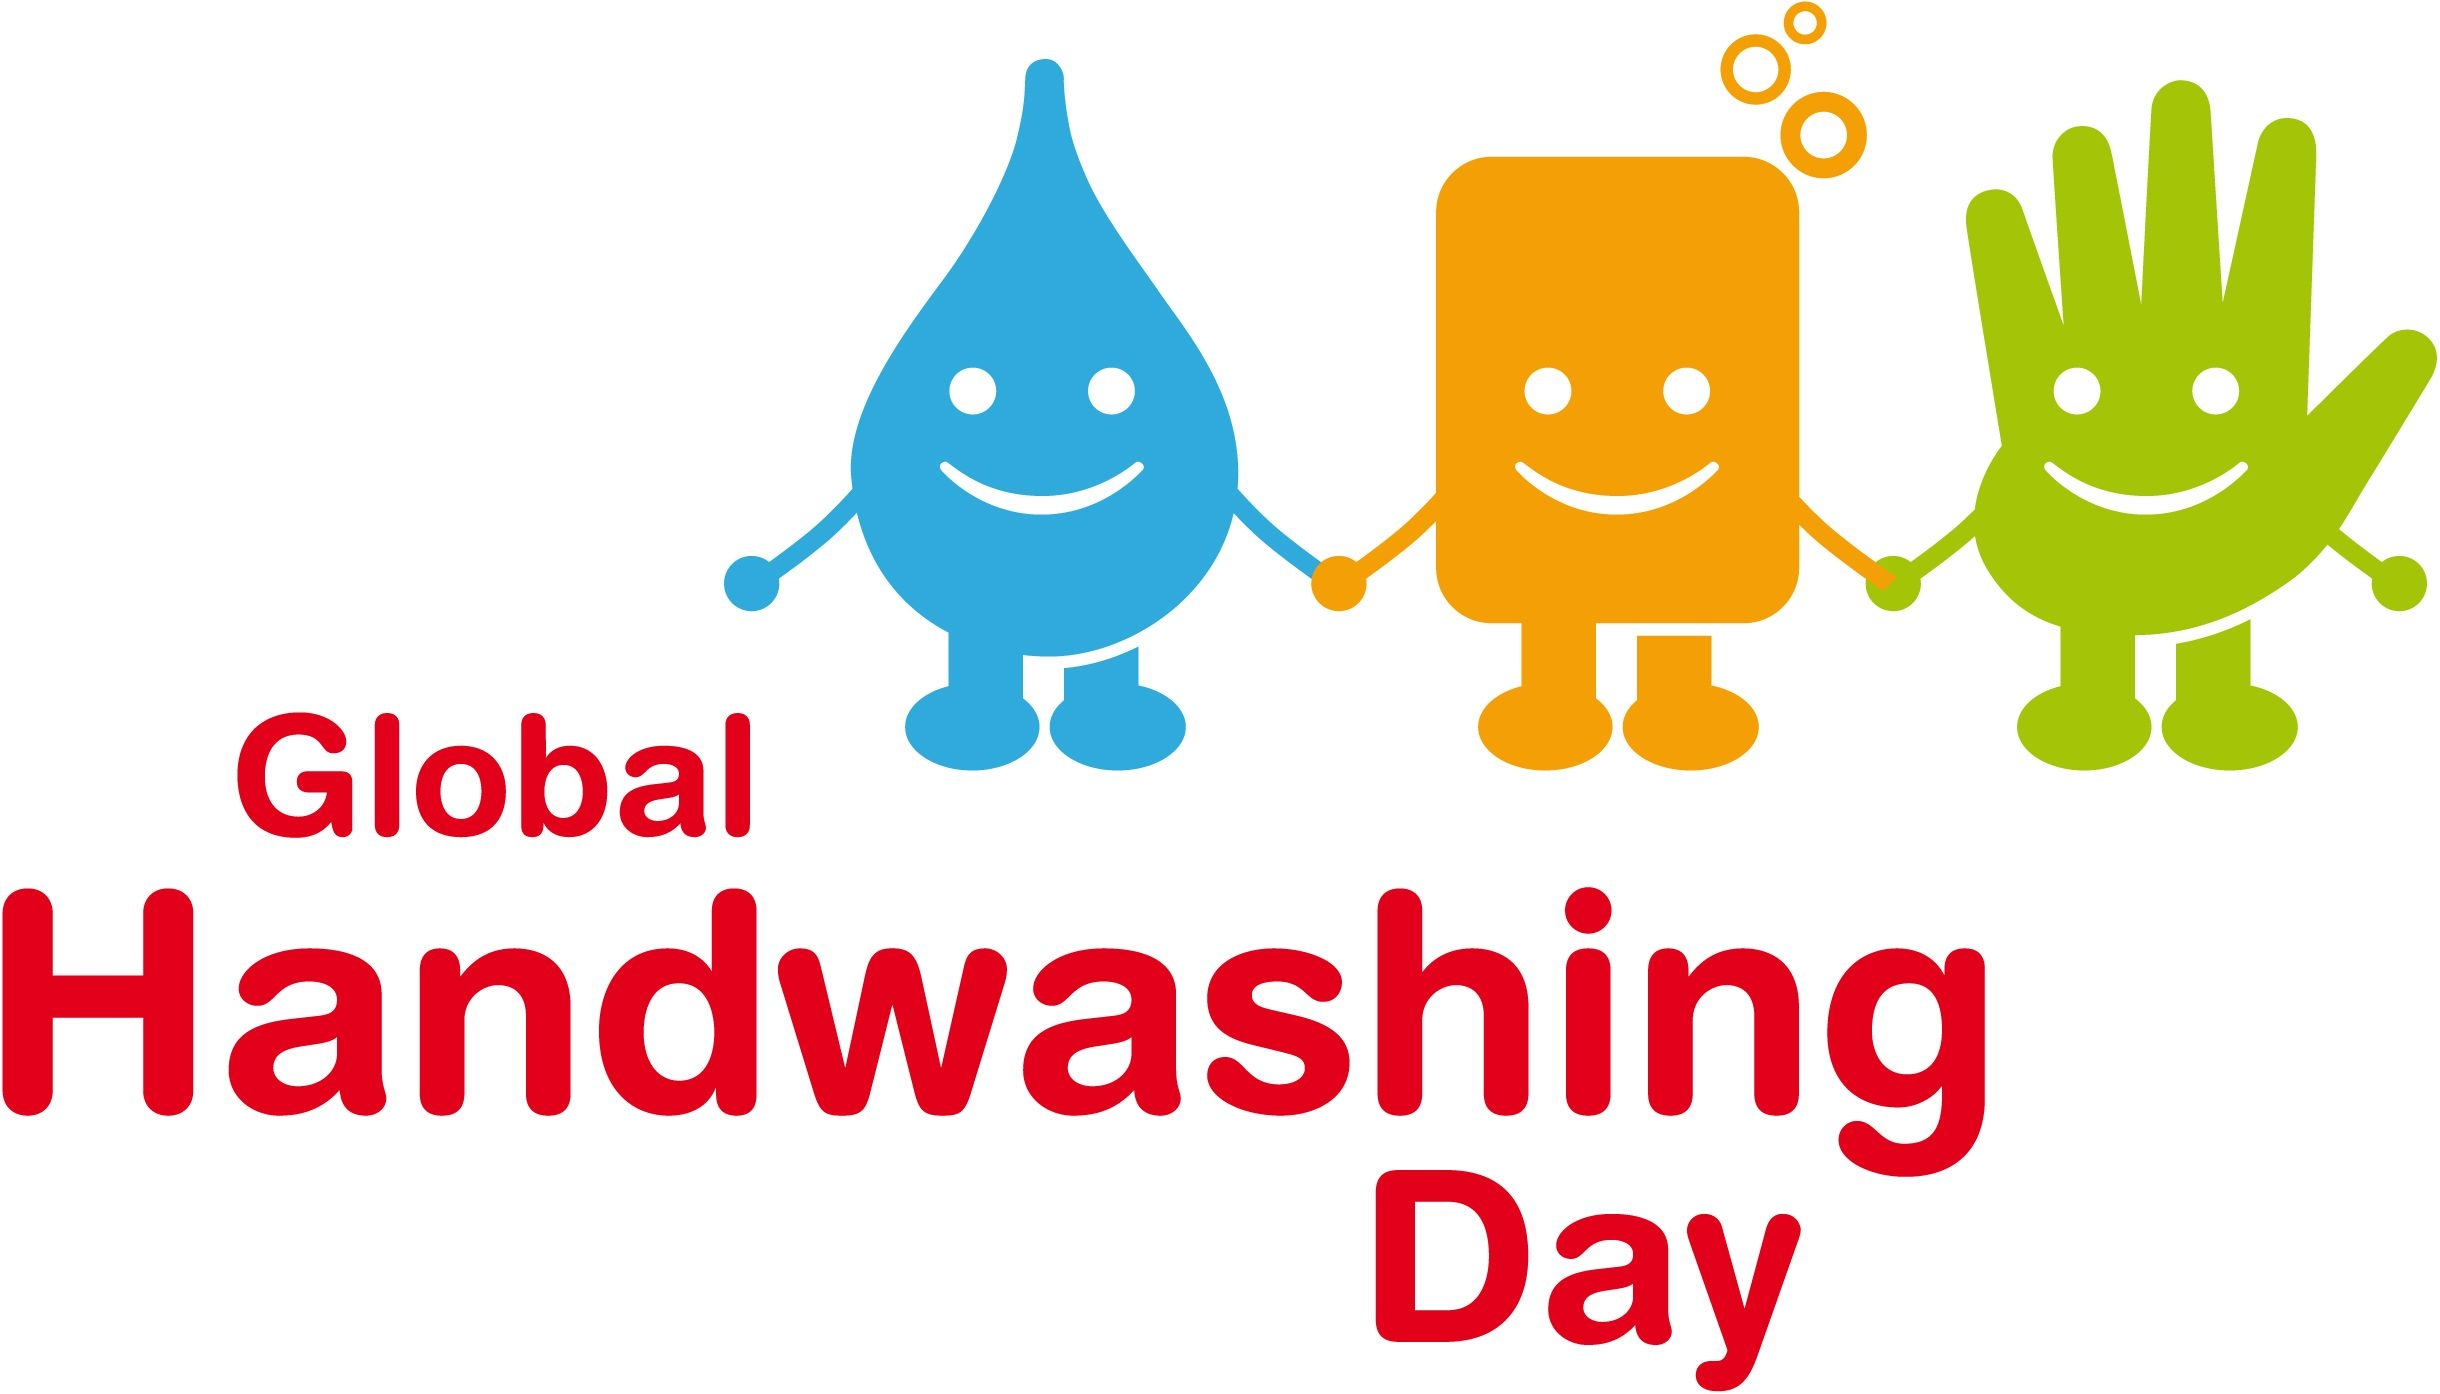 handwashing-day